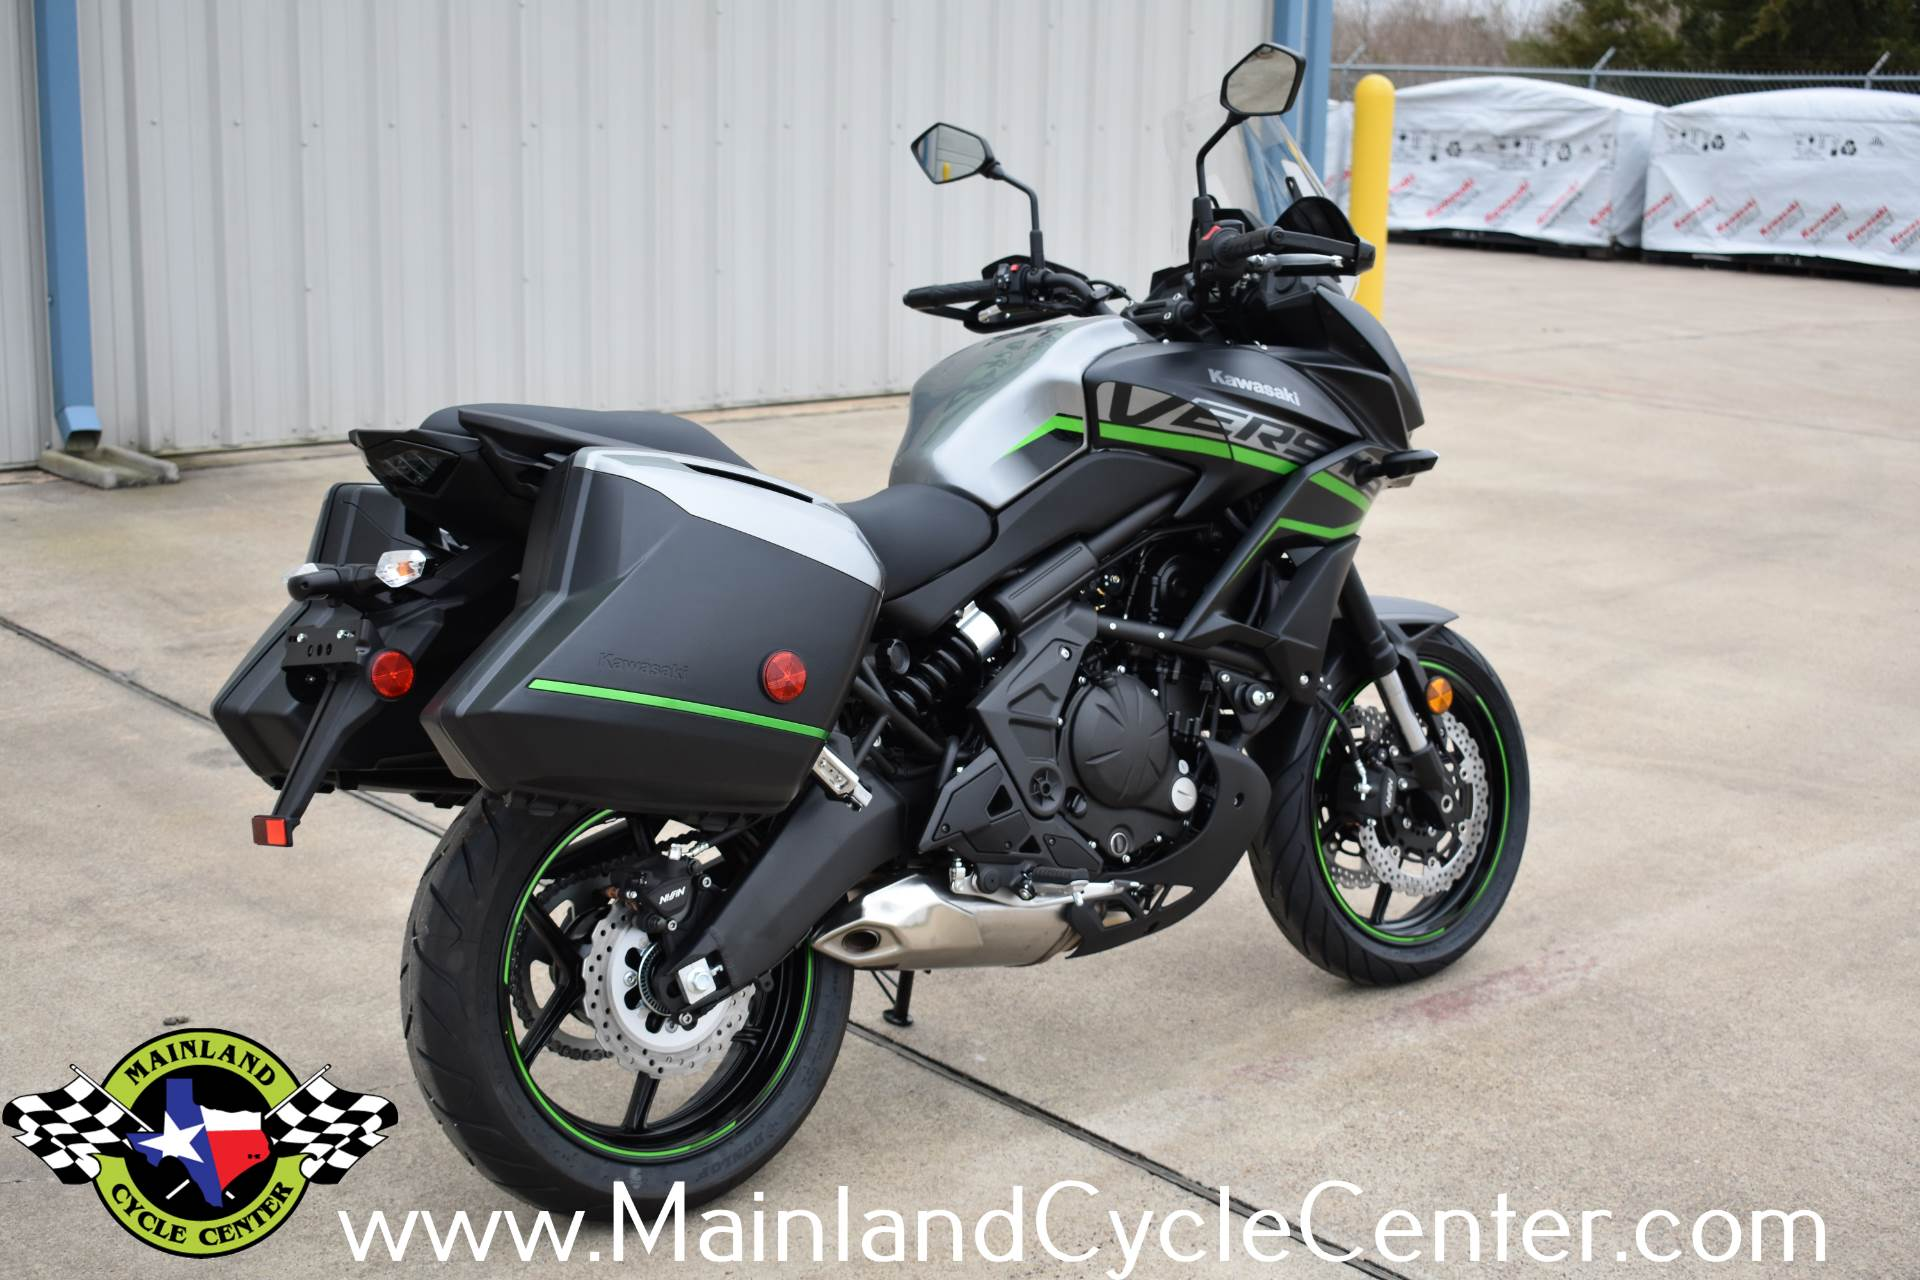 2019 Kawasaki Versys 650 LT in La Marque, Texas - Photo 3